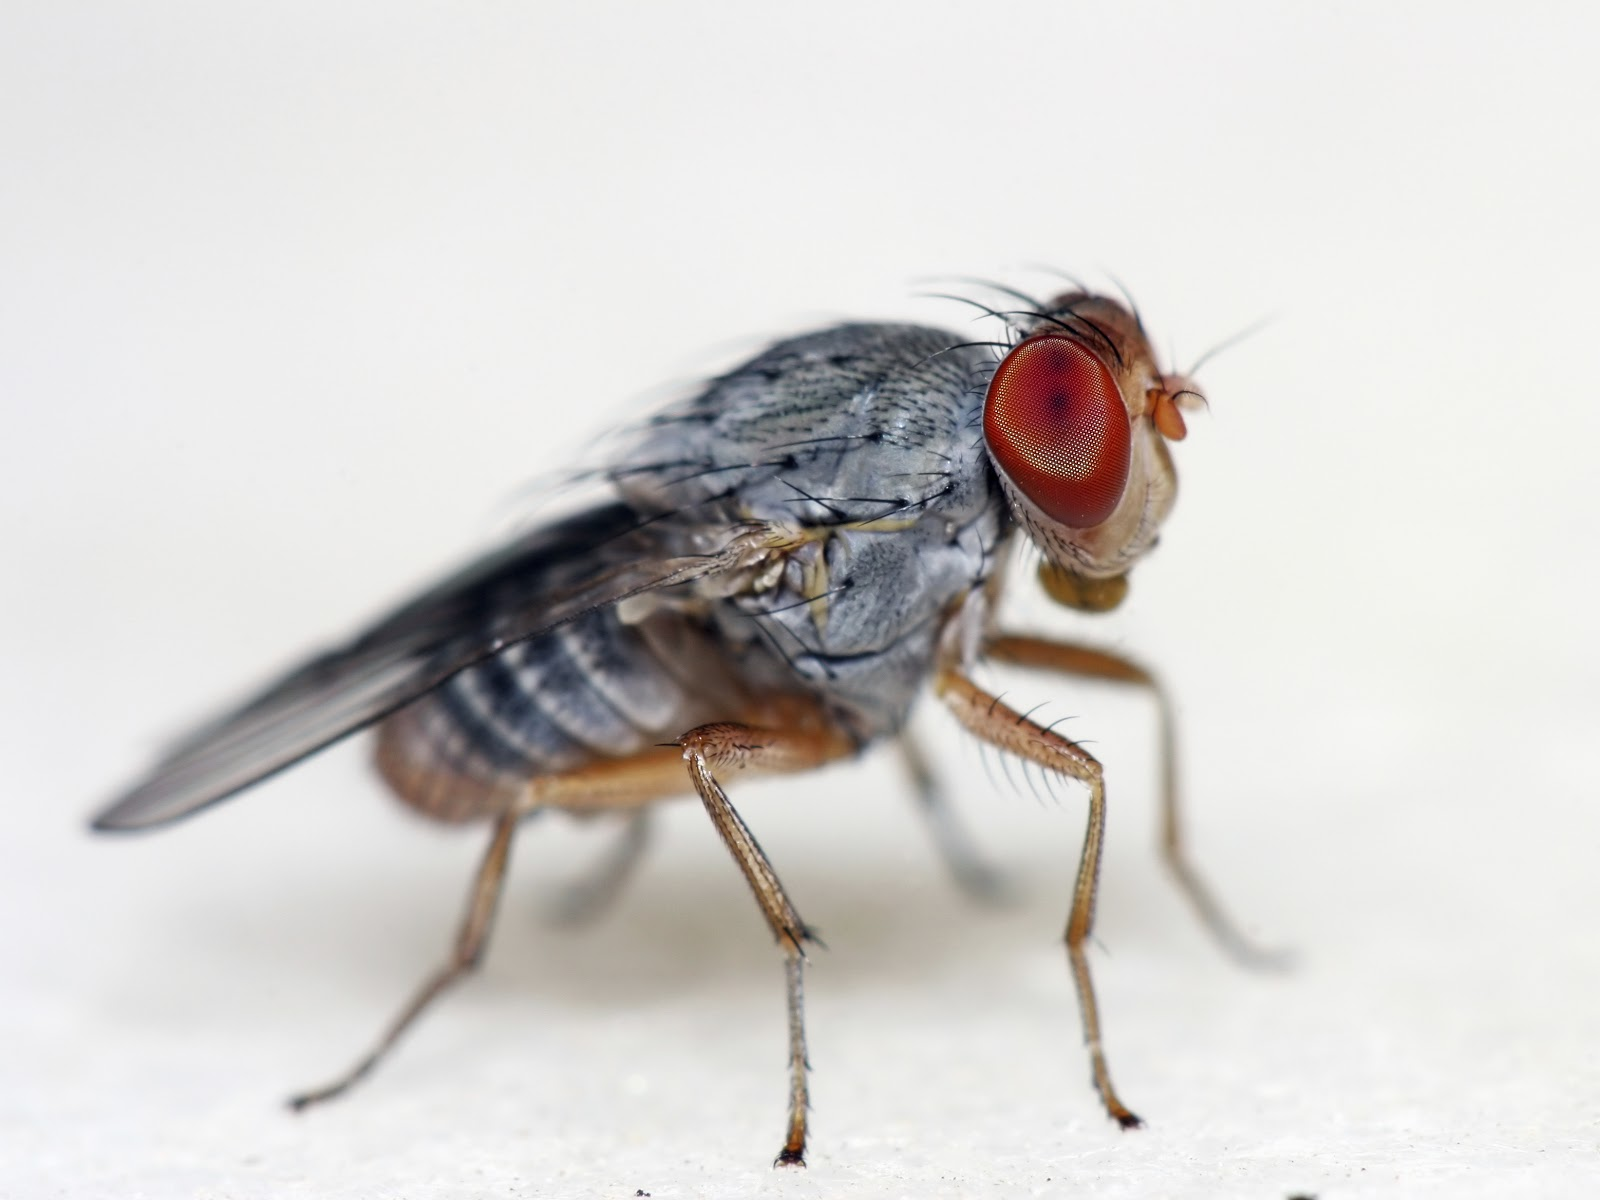 How To Get Rid Of Flies In The Kitchen Sink